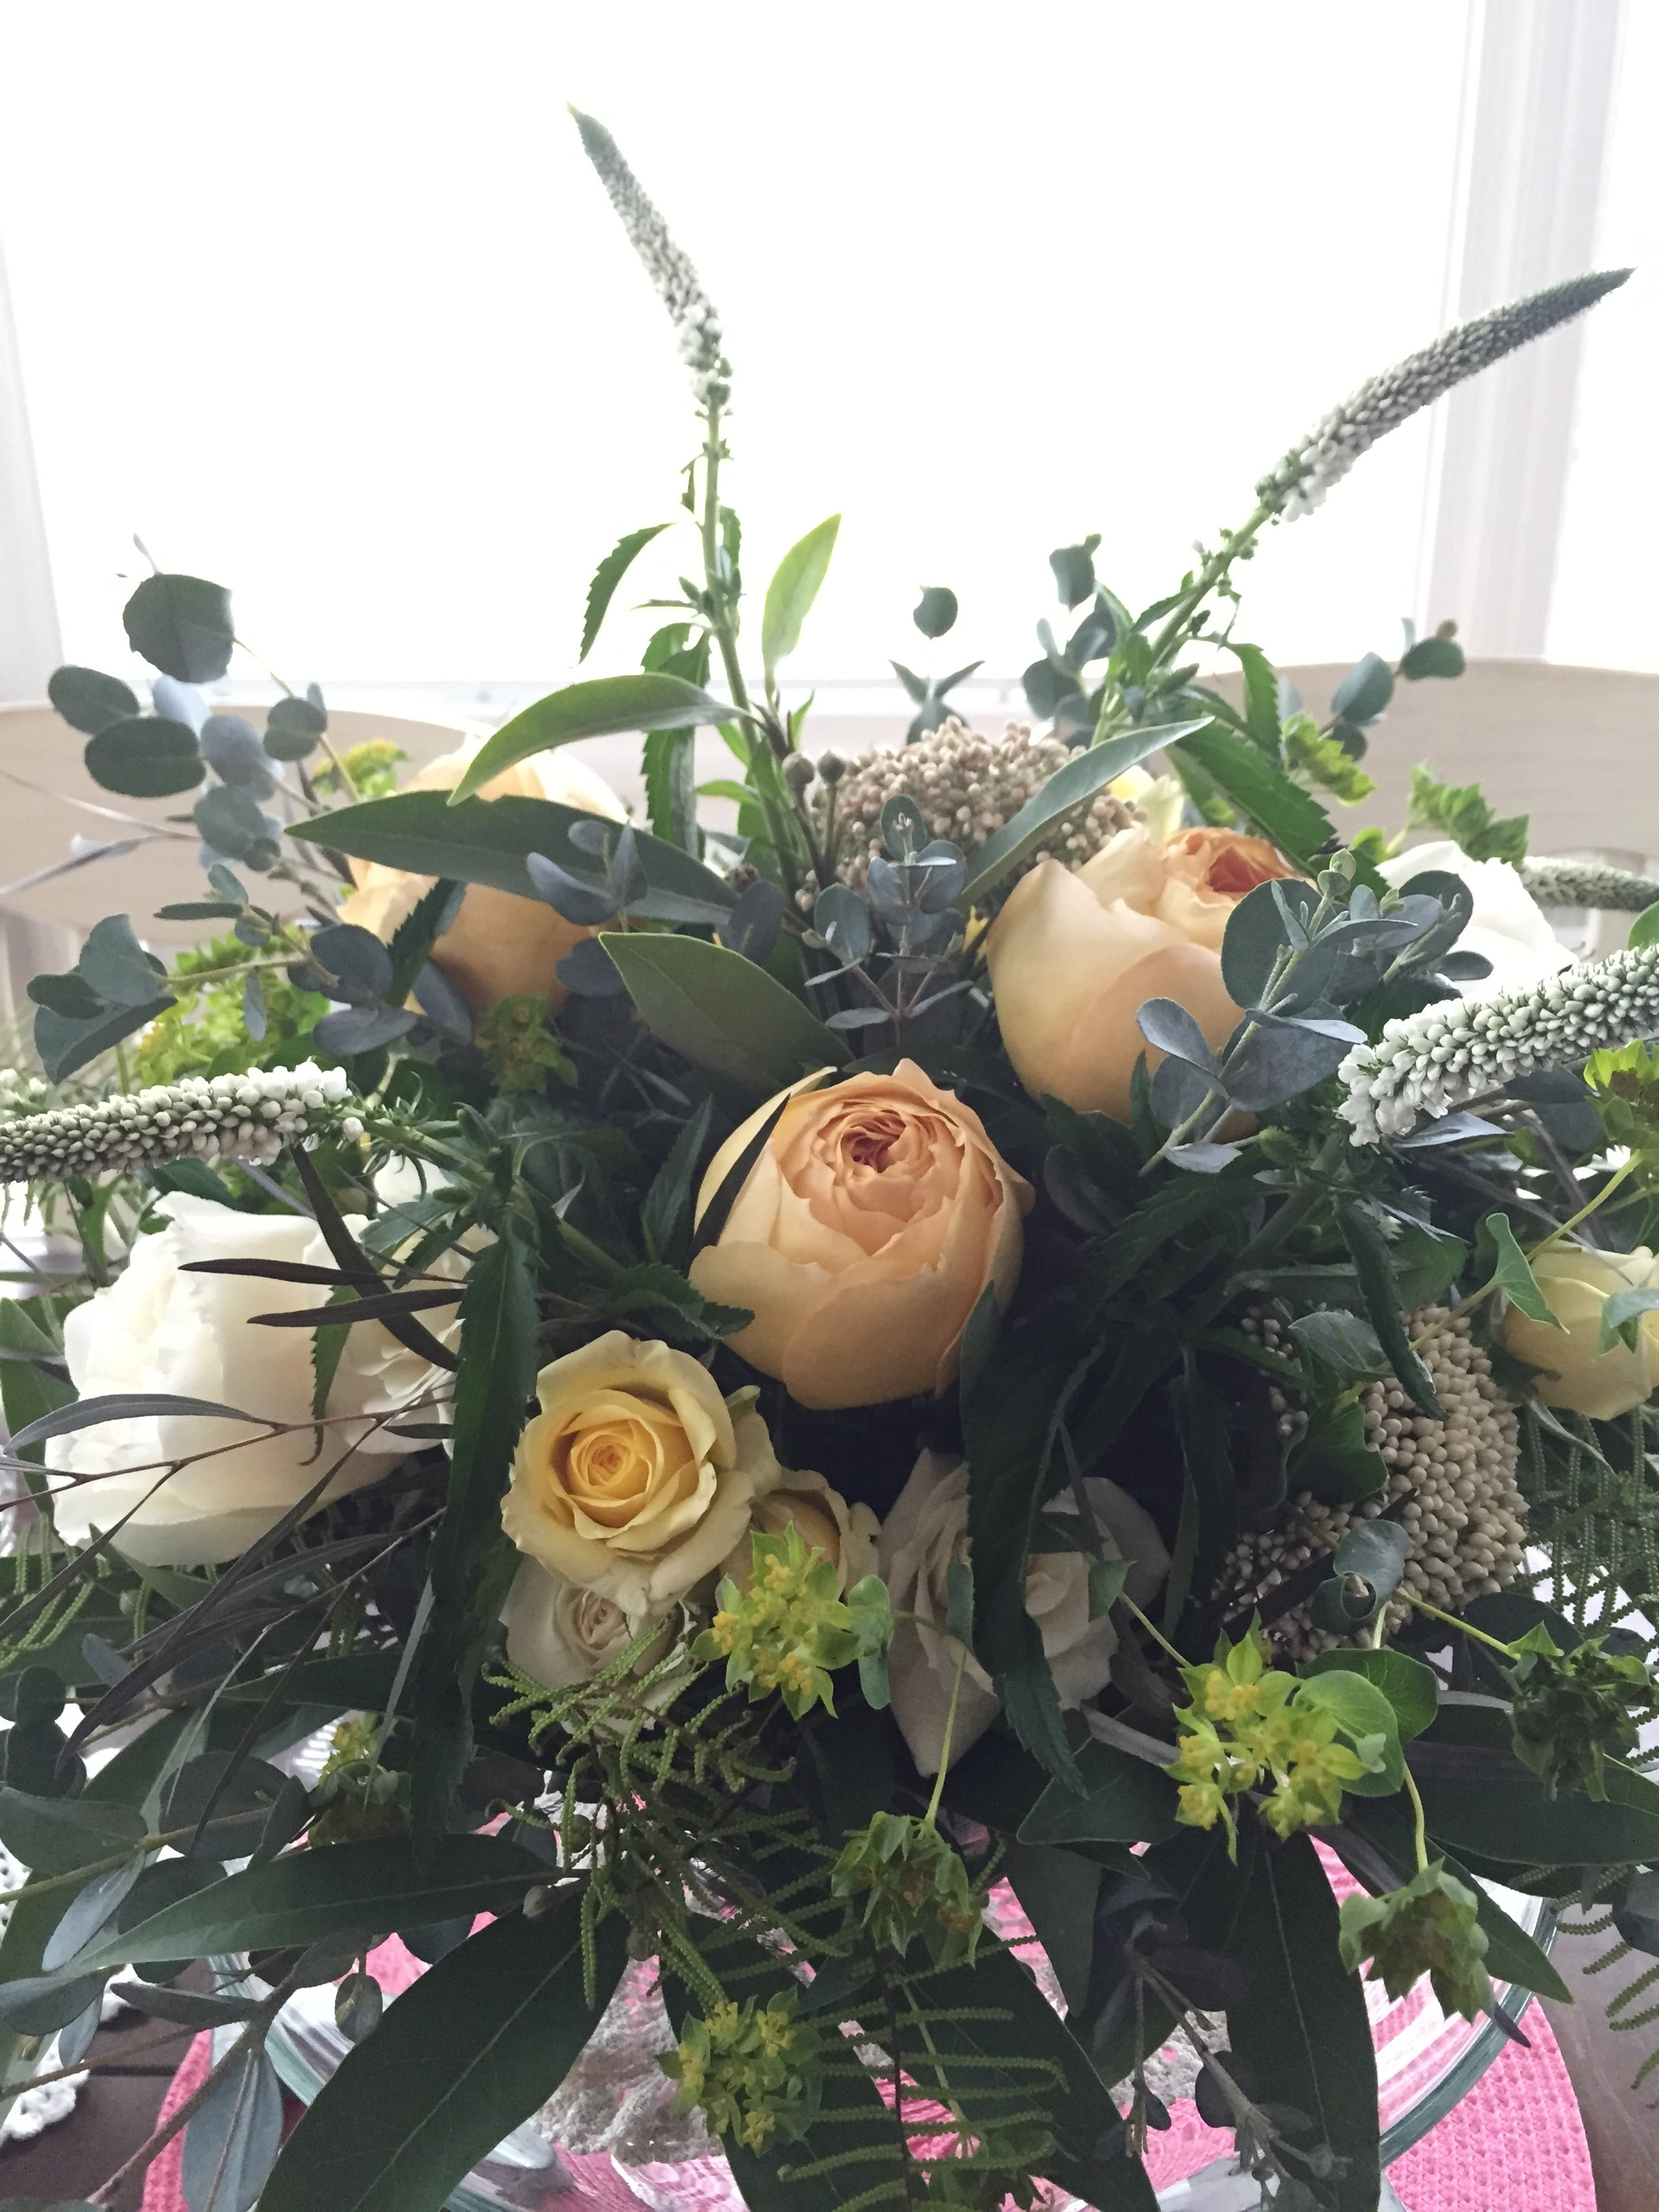 Floral design by Westvirjeni in a white and yellow color scheme in a silver nesting bowl.